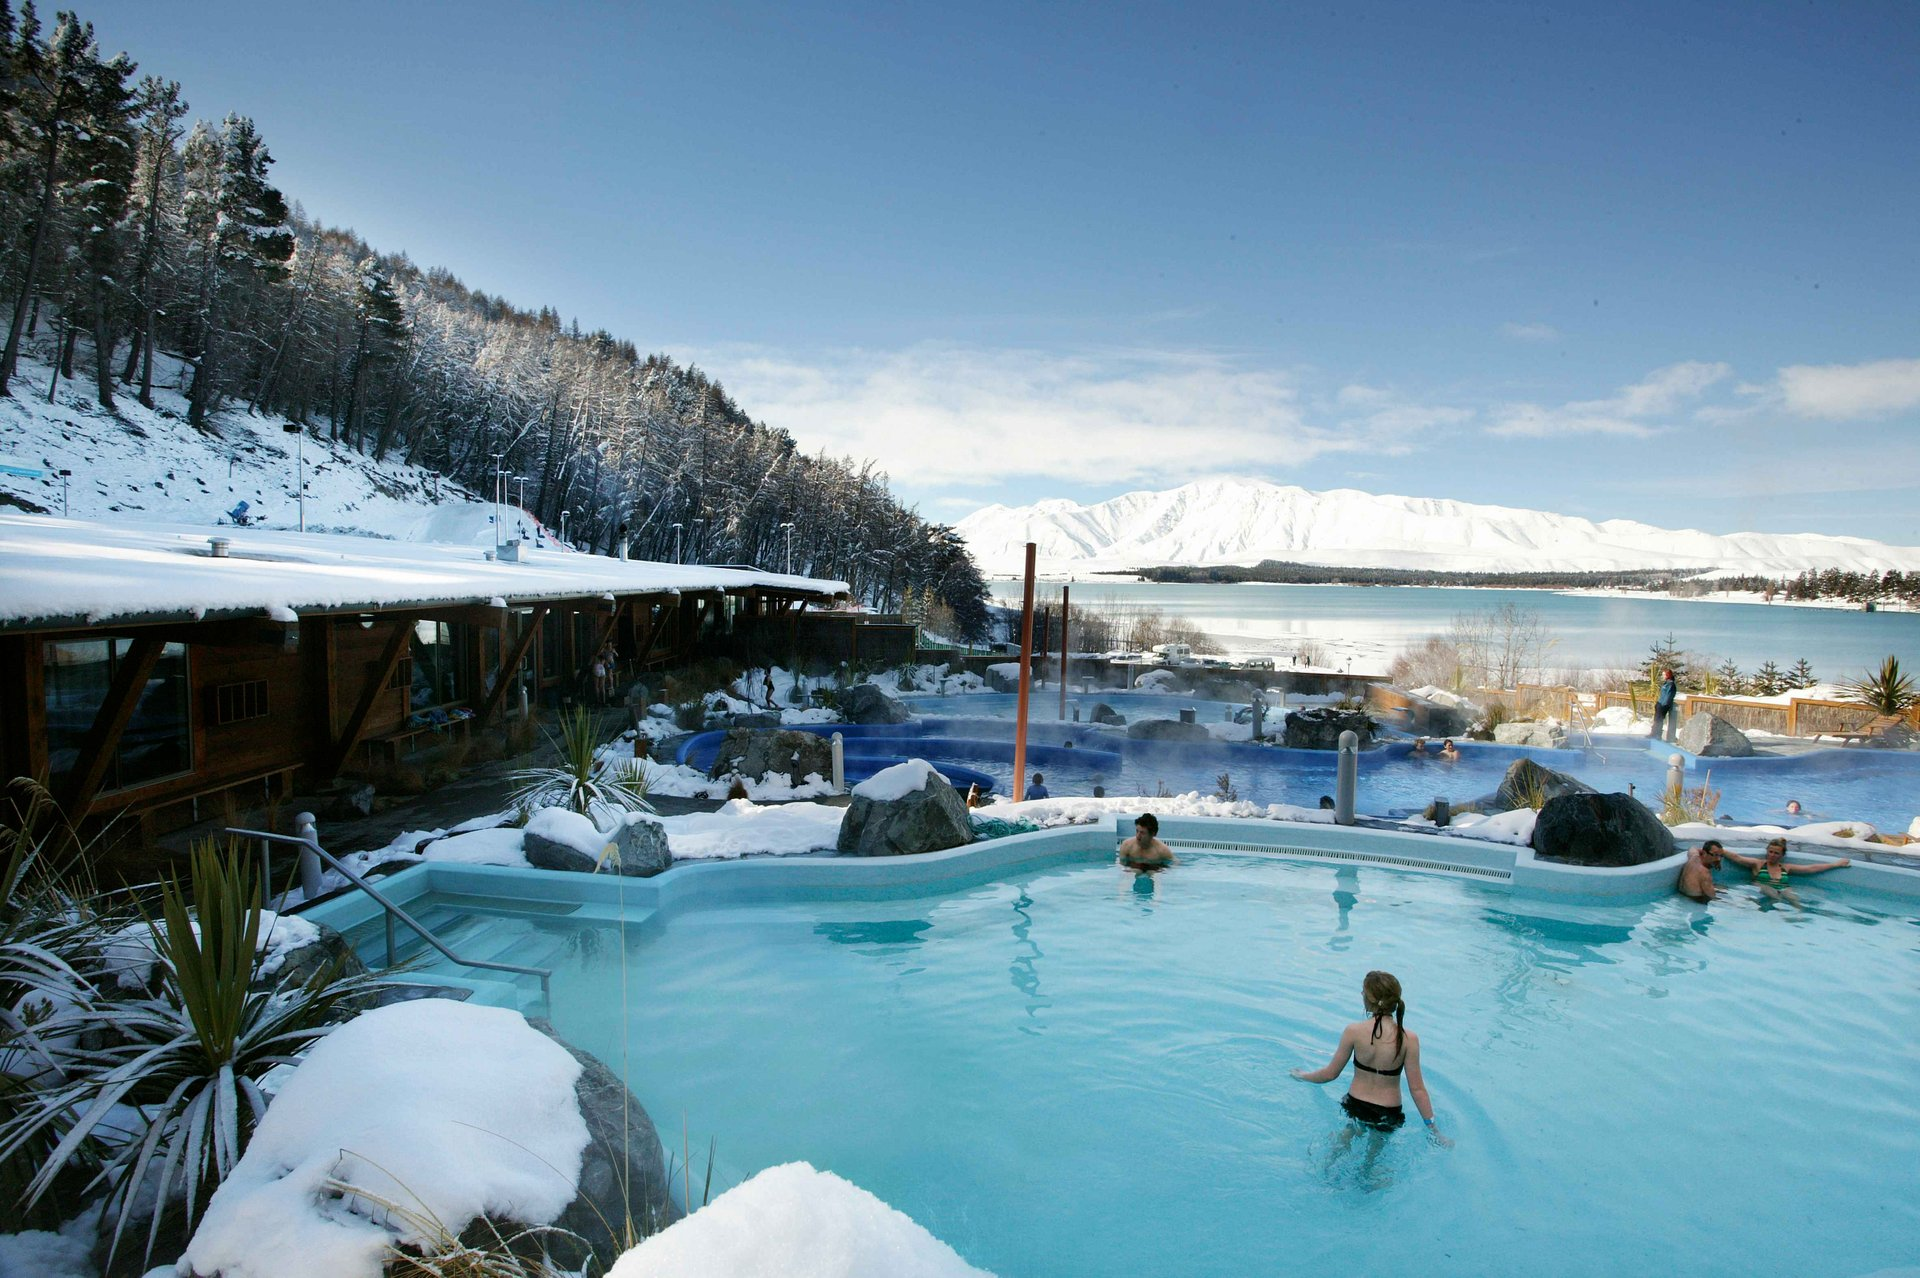 Tekapo Springs Hot Pools in New Zealand 2020 - Best Time